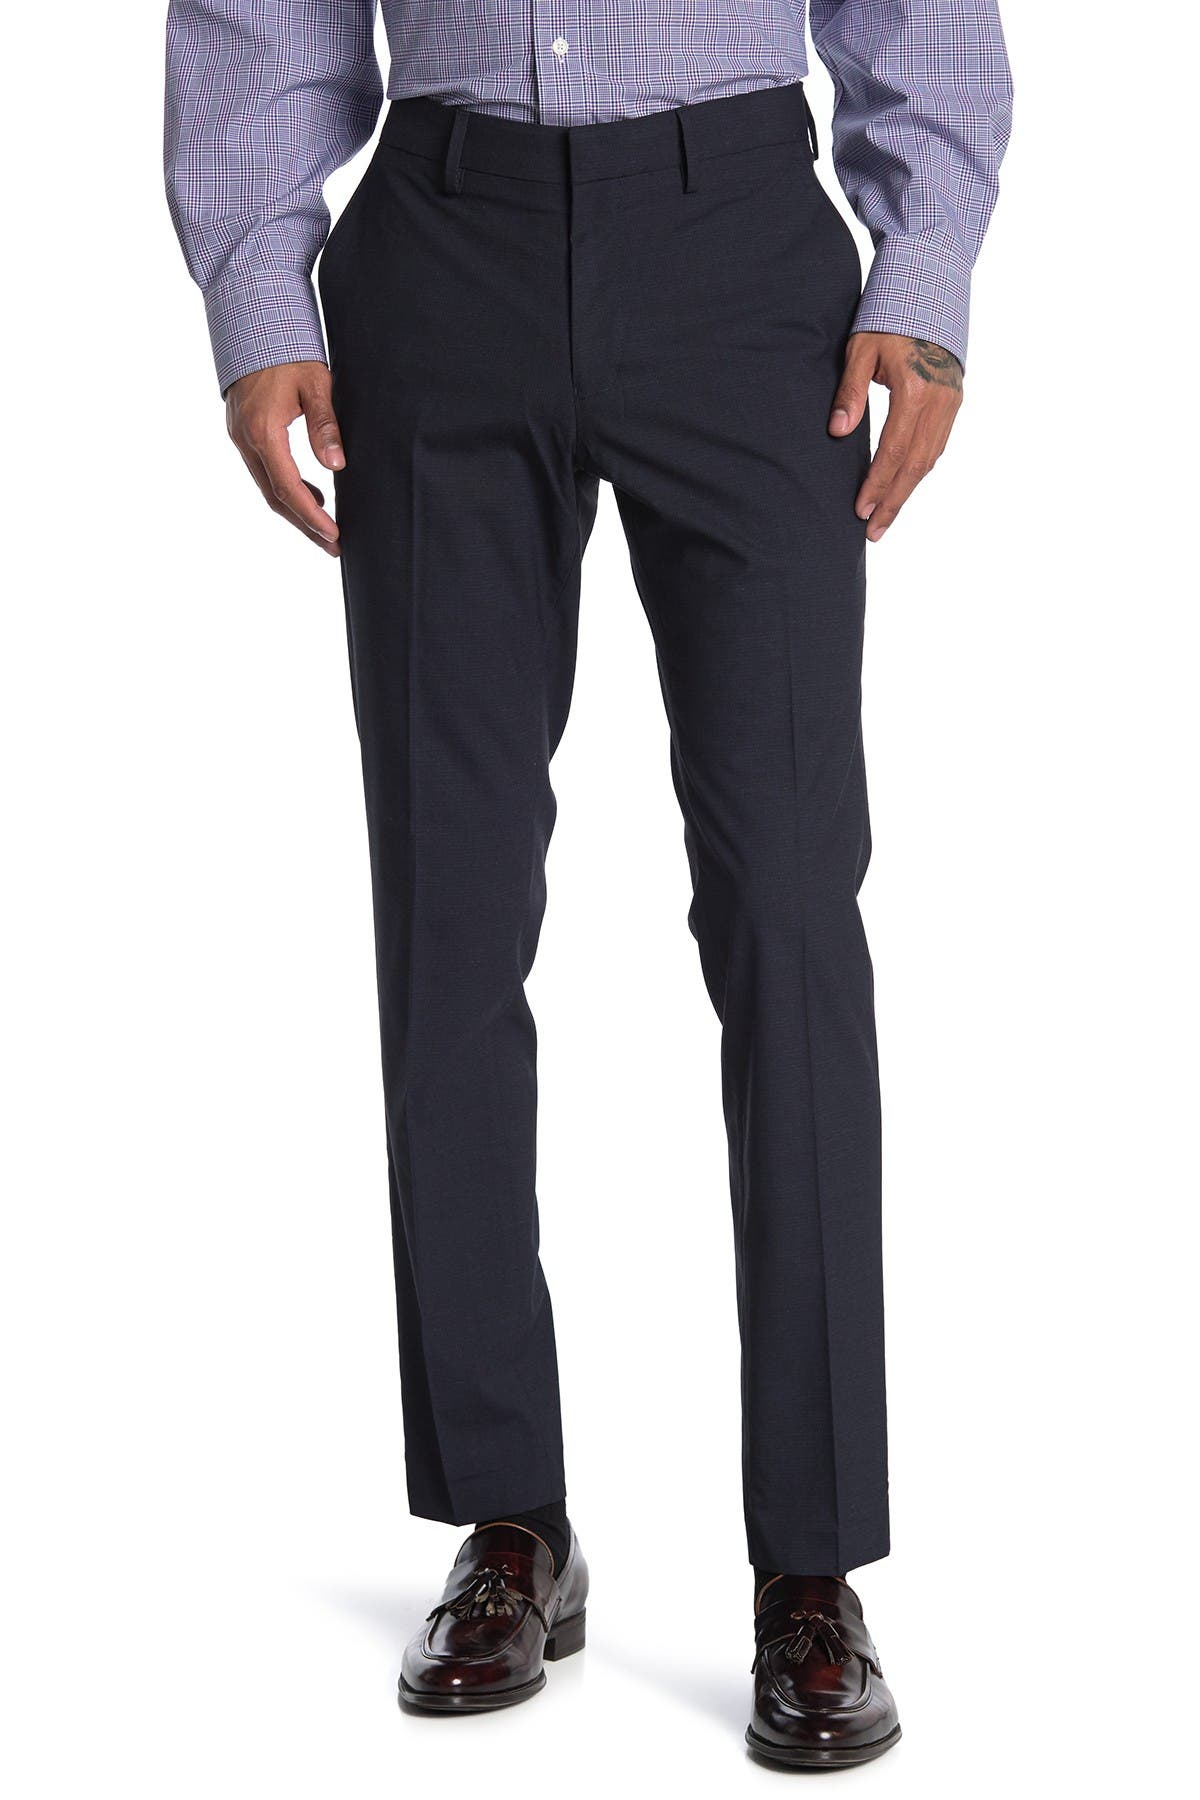 "Image of Louis Raphael Basketwoven Trousers - 30-34"" Inseam"